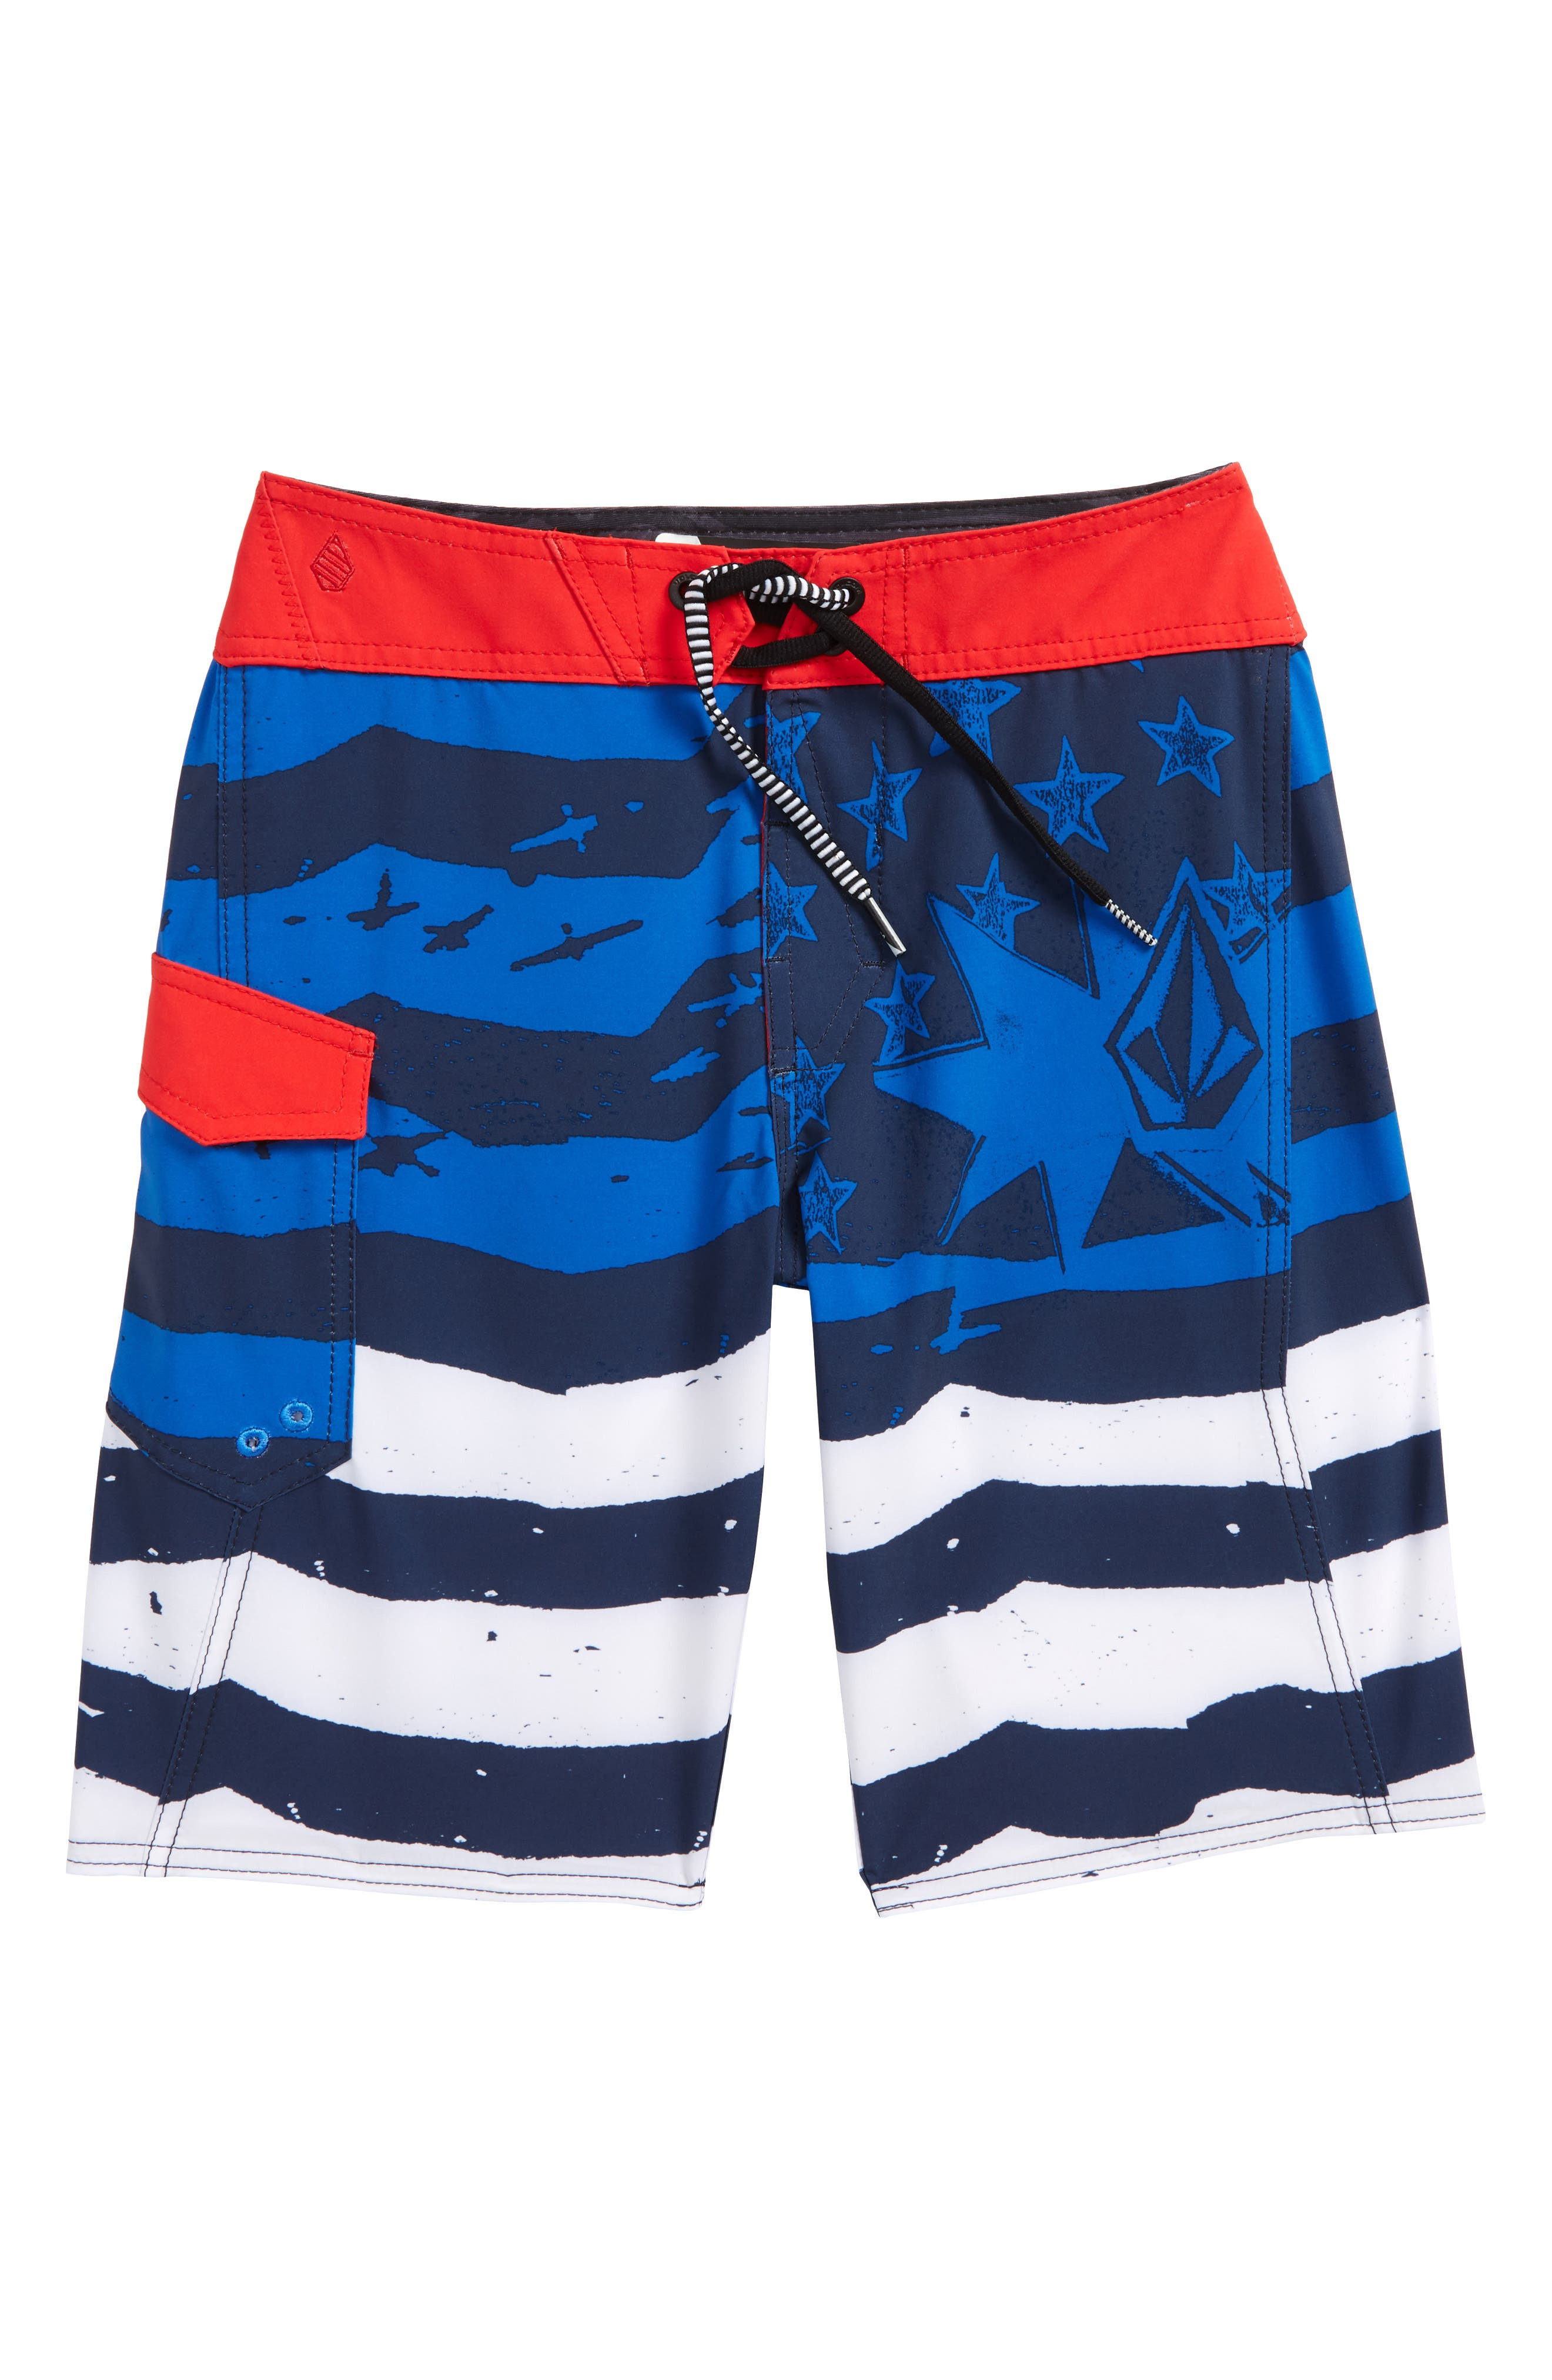 Youth of July Mod Board Shorts,                         Main,                         color, True Blue